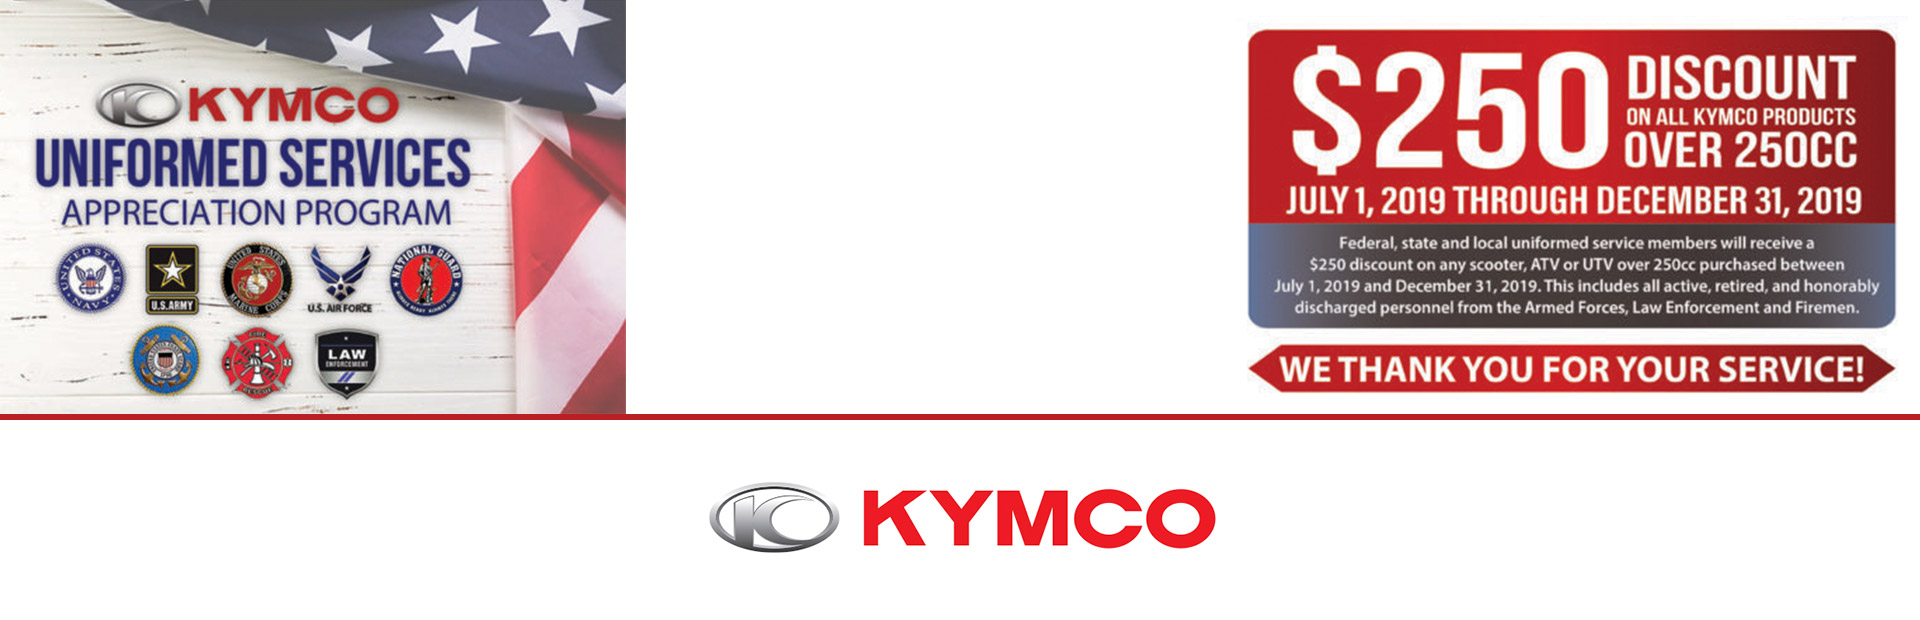 KYMCO: Uniformed Services Appreciation Program